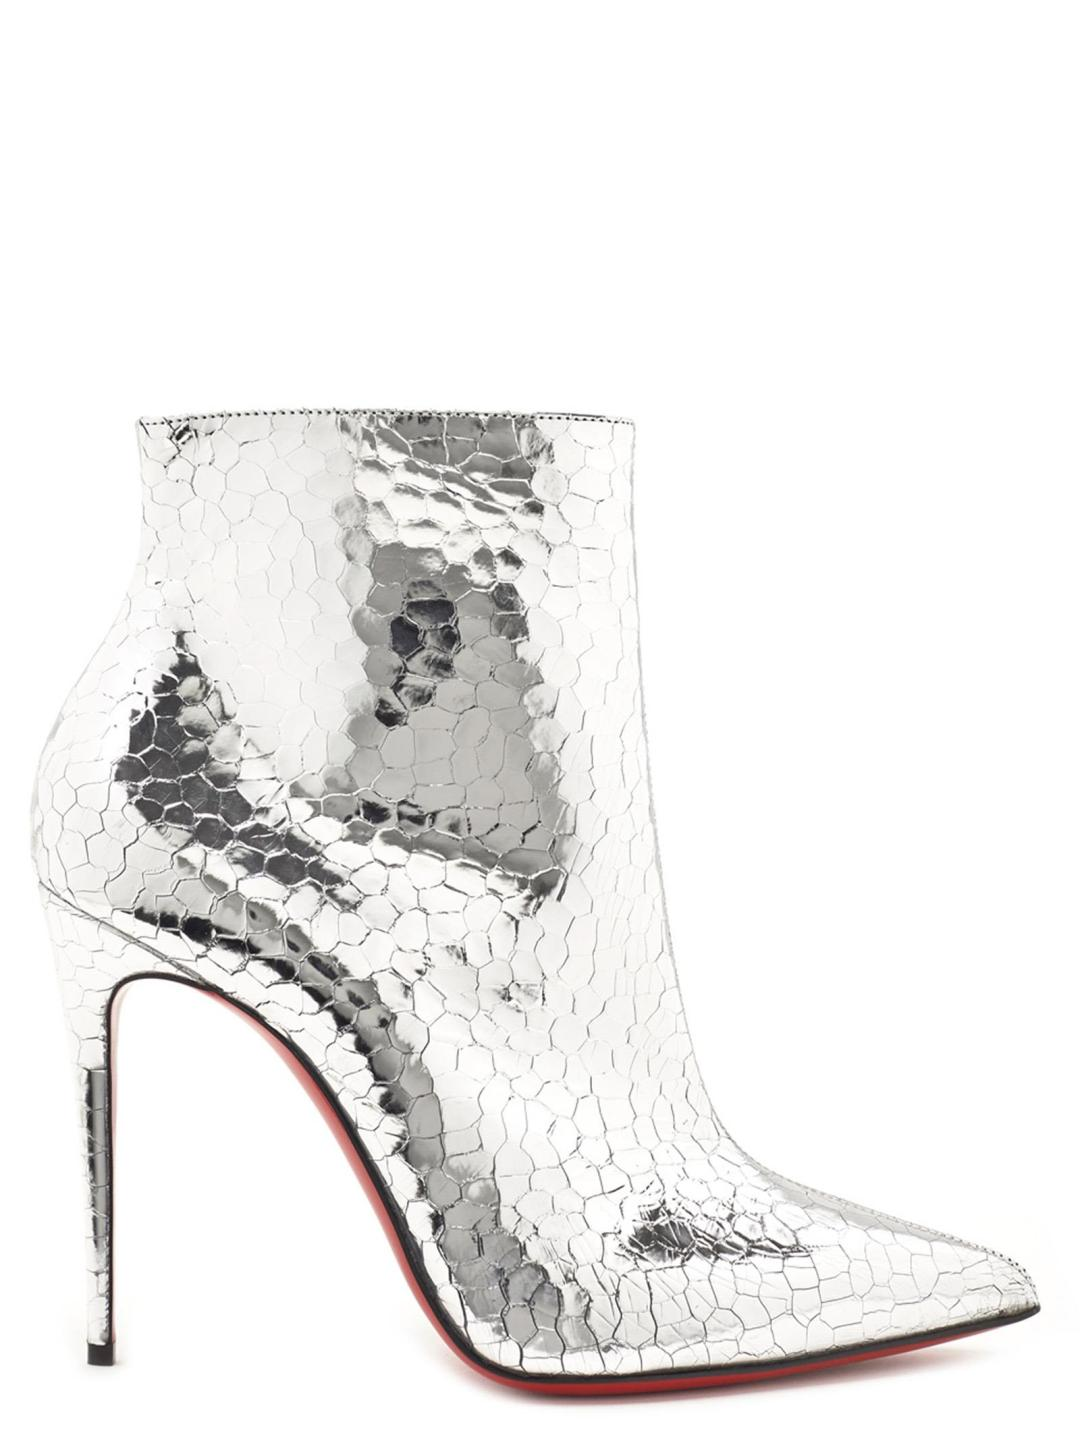 0888234a487 Ready-to-Wear Report: Christian Louboutin Fall 2018 Collection at ...